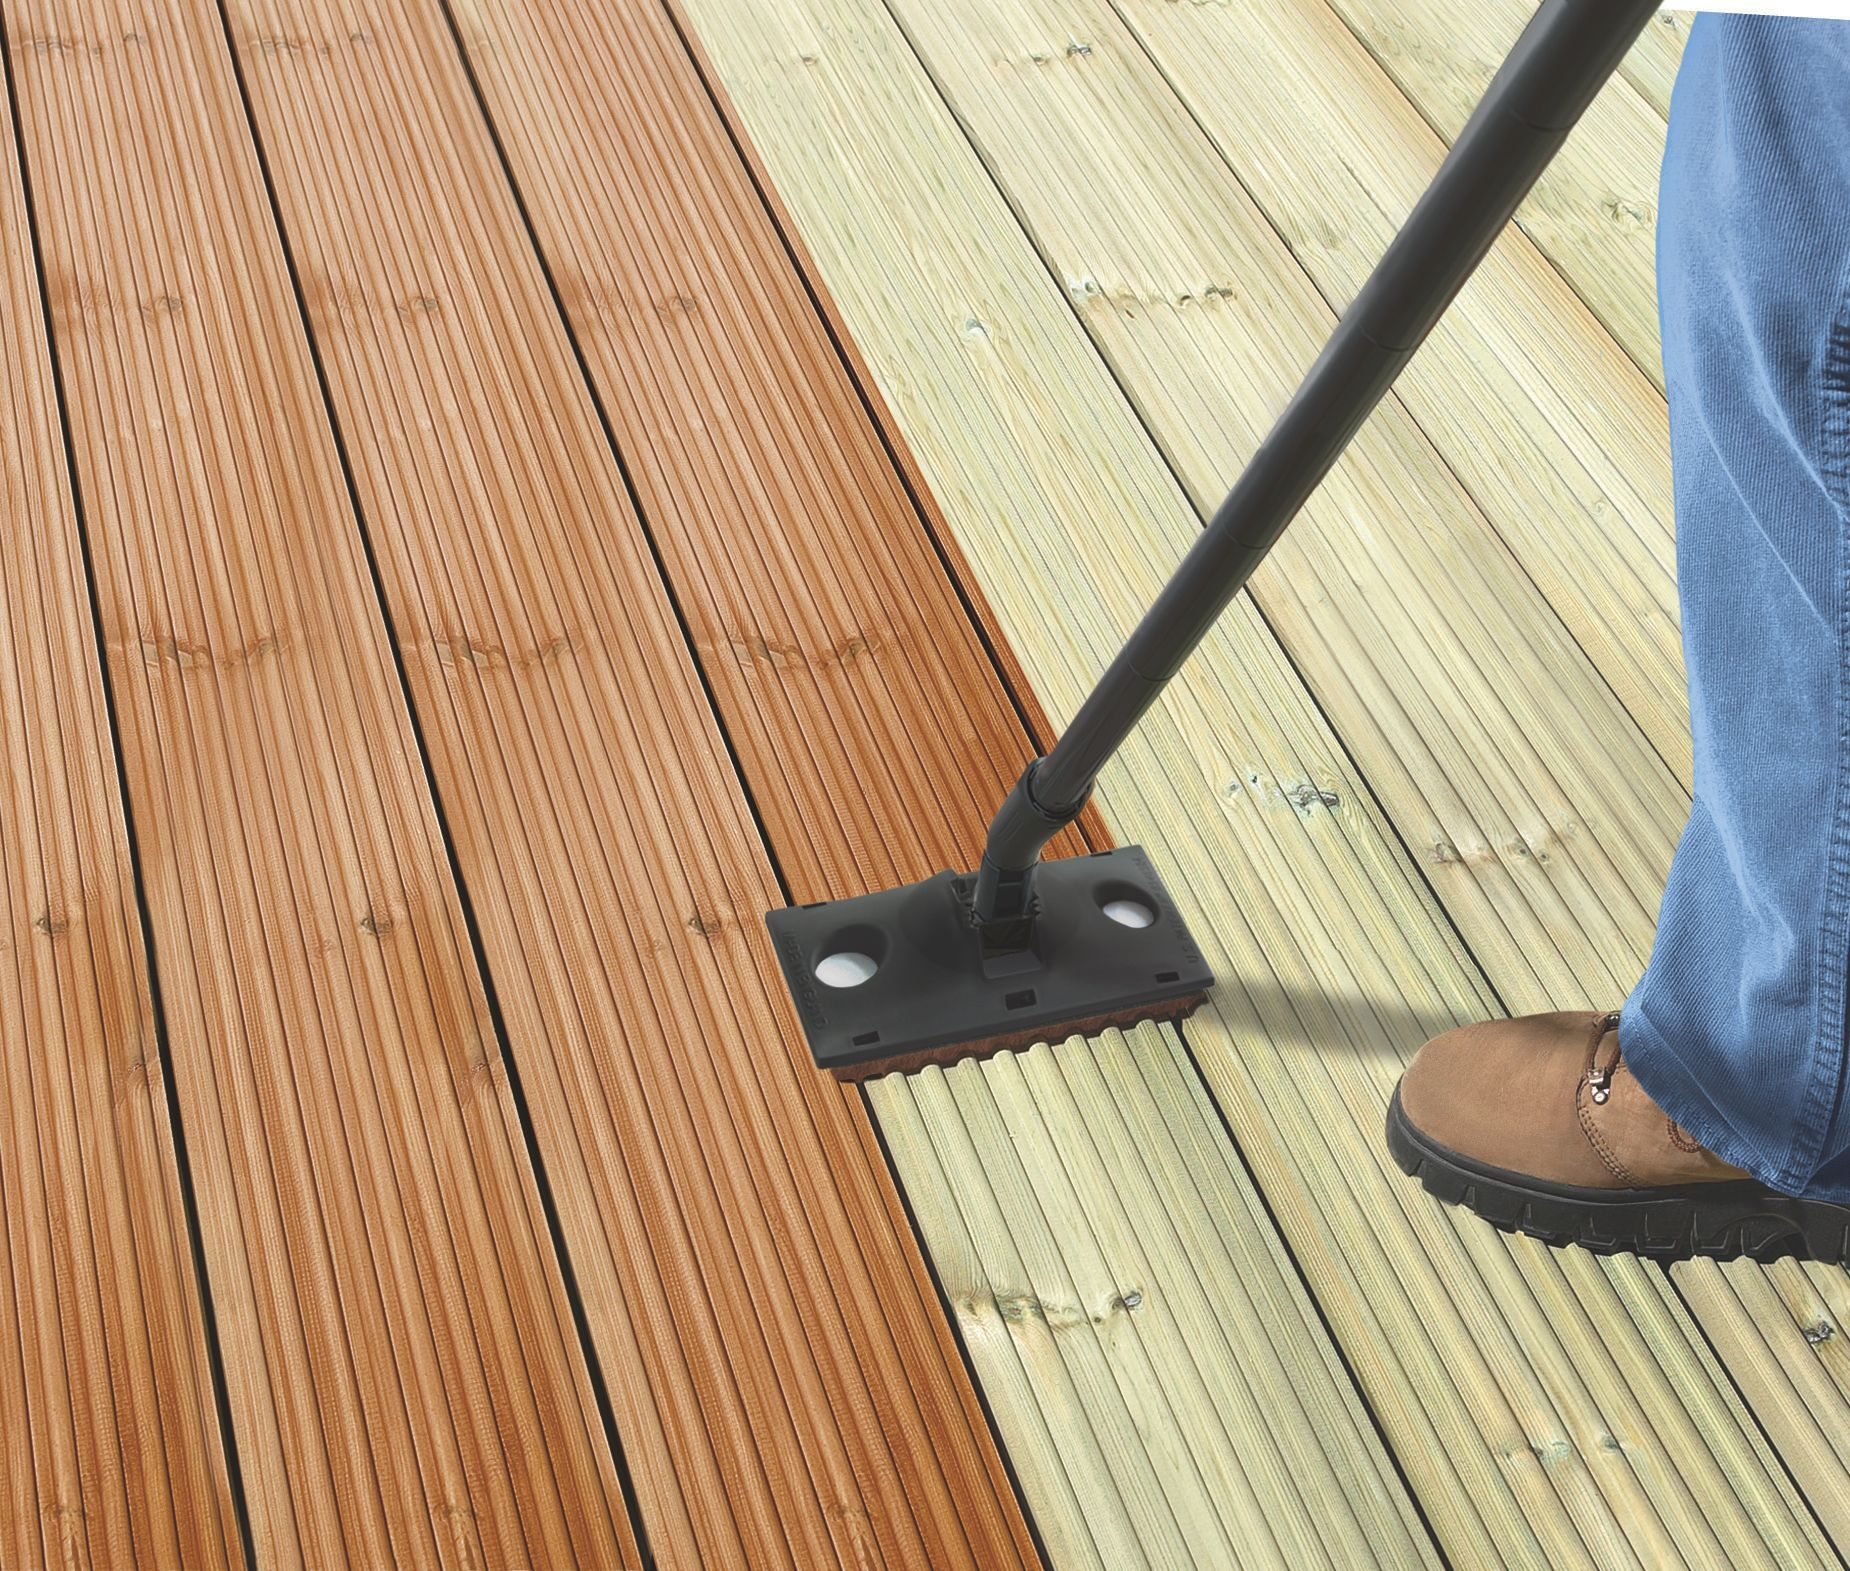 How To Clean, Paint U0026 Care For Decking